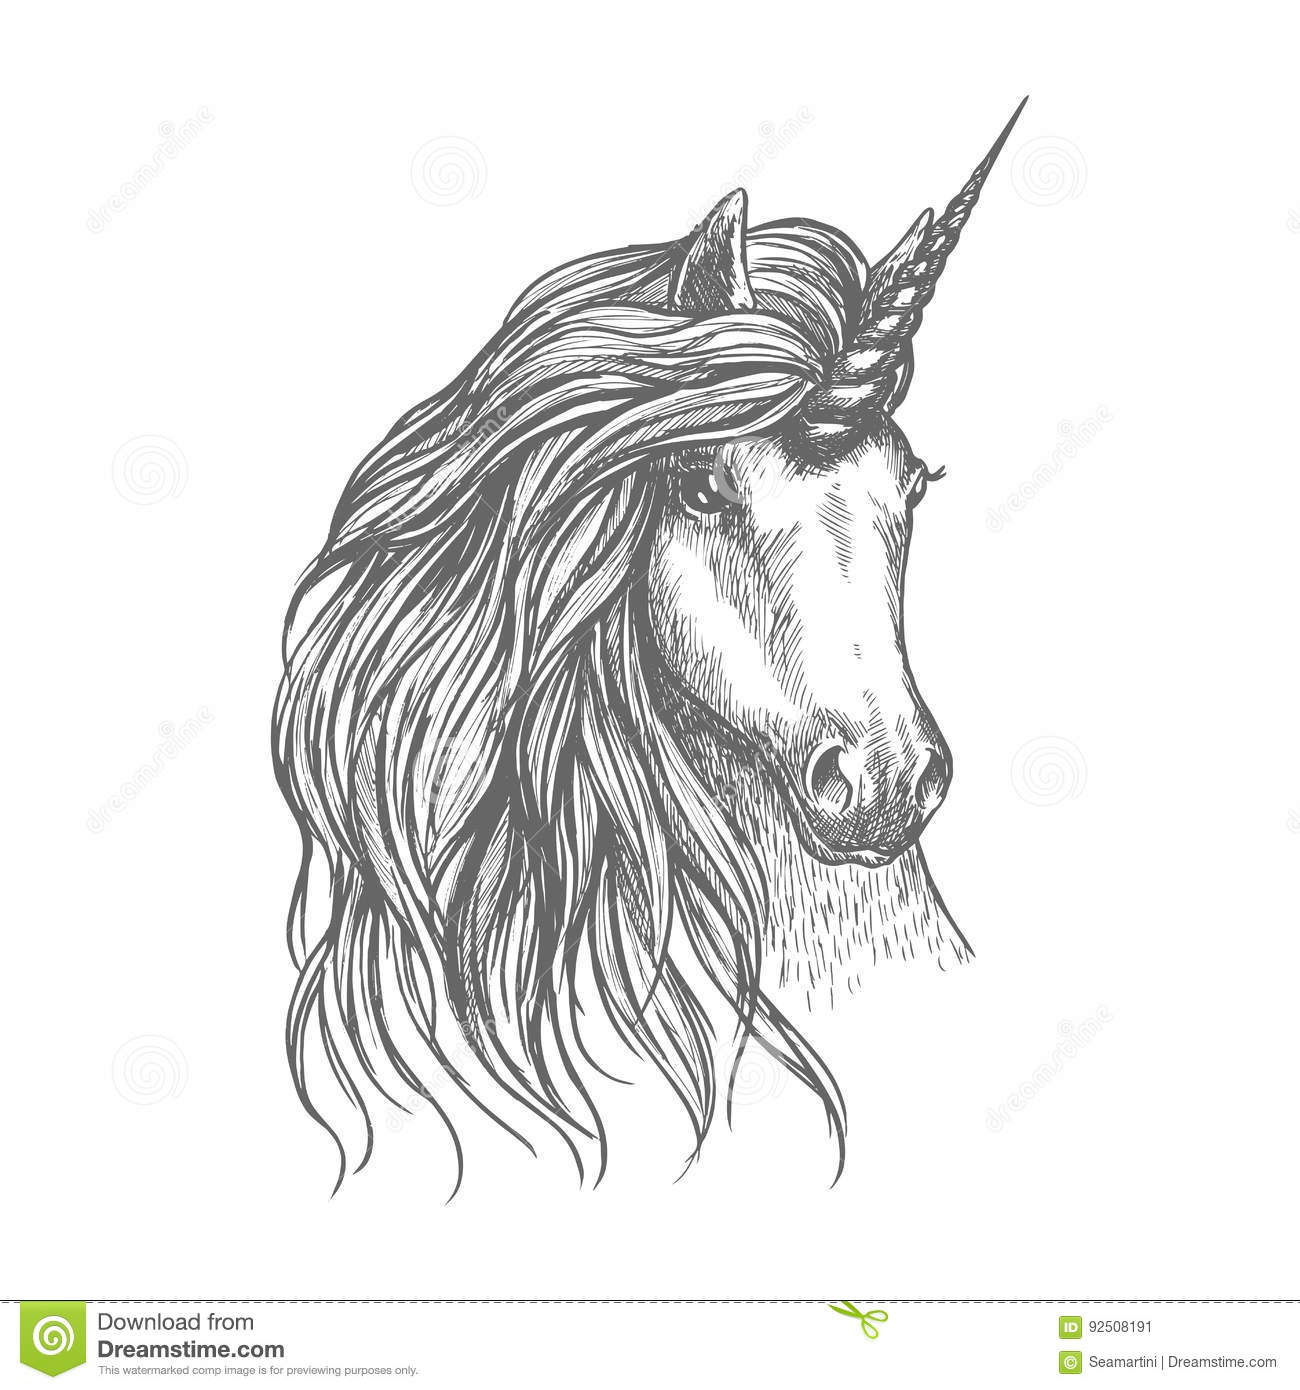 Unicorn Fantastic Horse Sketch For Tattoo Design Stock Vector Illustration Of Mare Pony 92508191